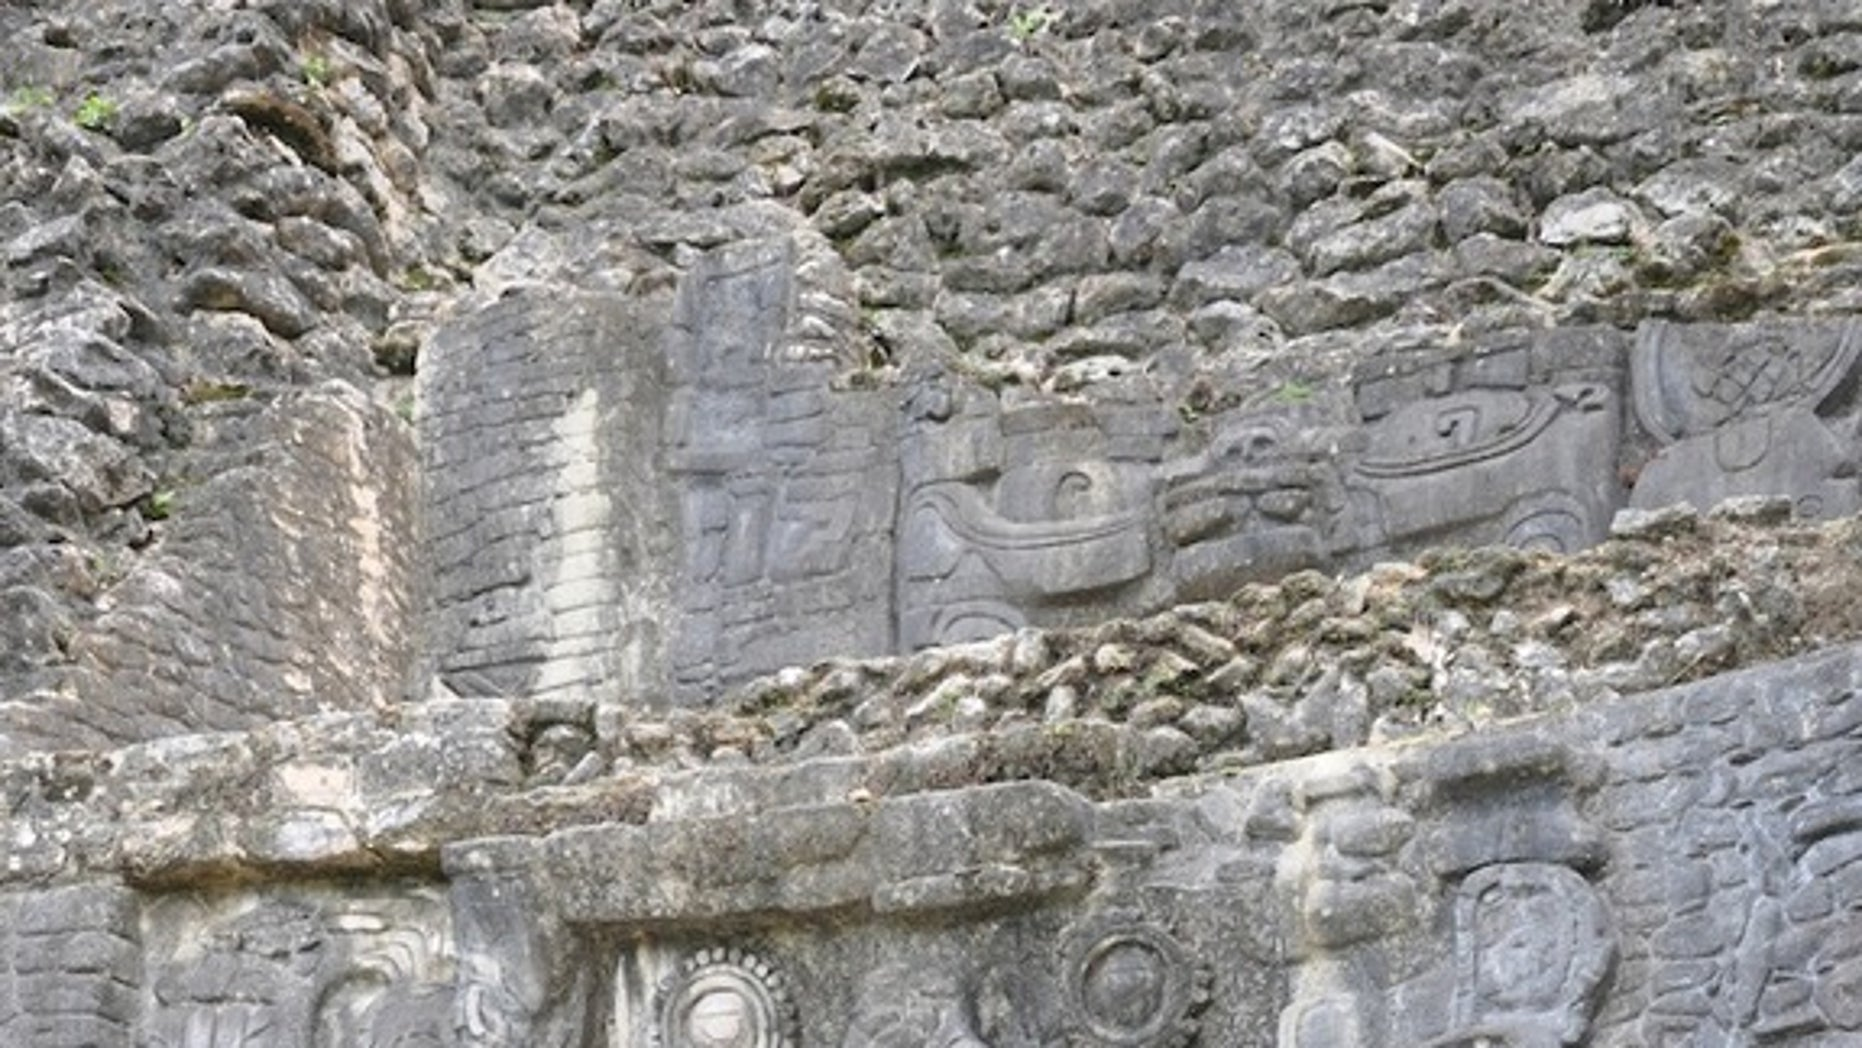 An example of the elaborate stone carvings made by Classical Mayans. This frieze is in Caracol, Belize.